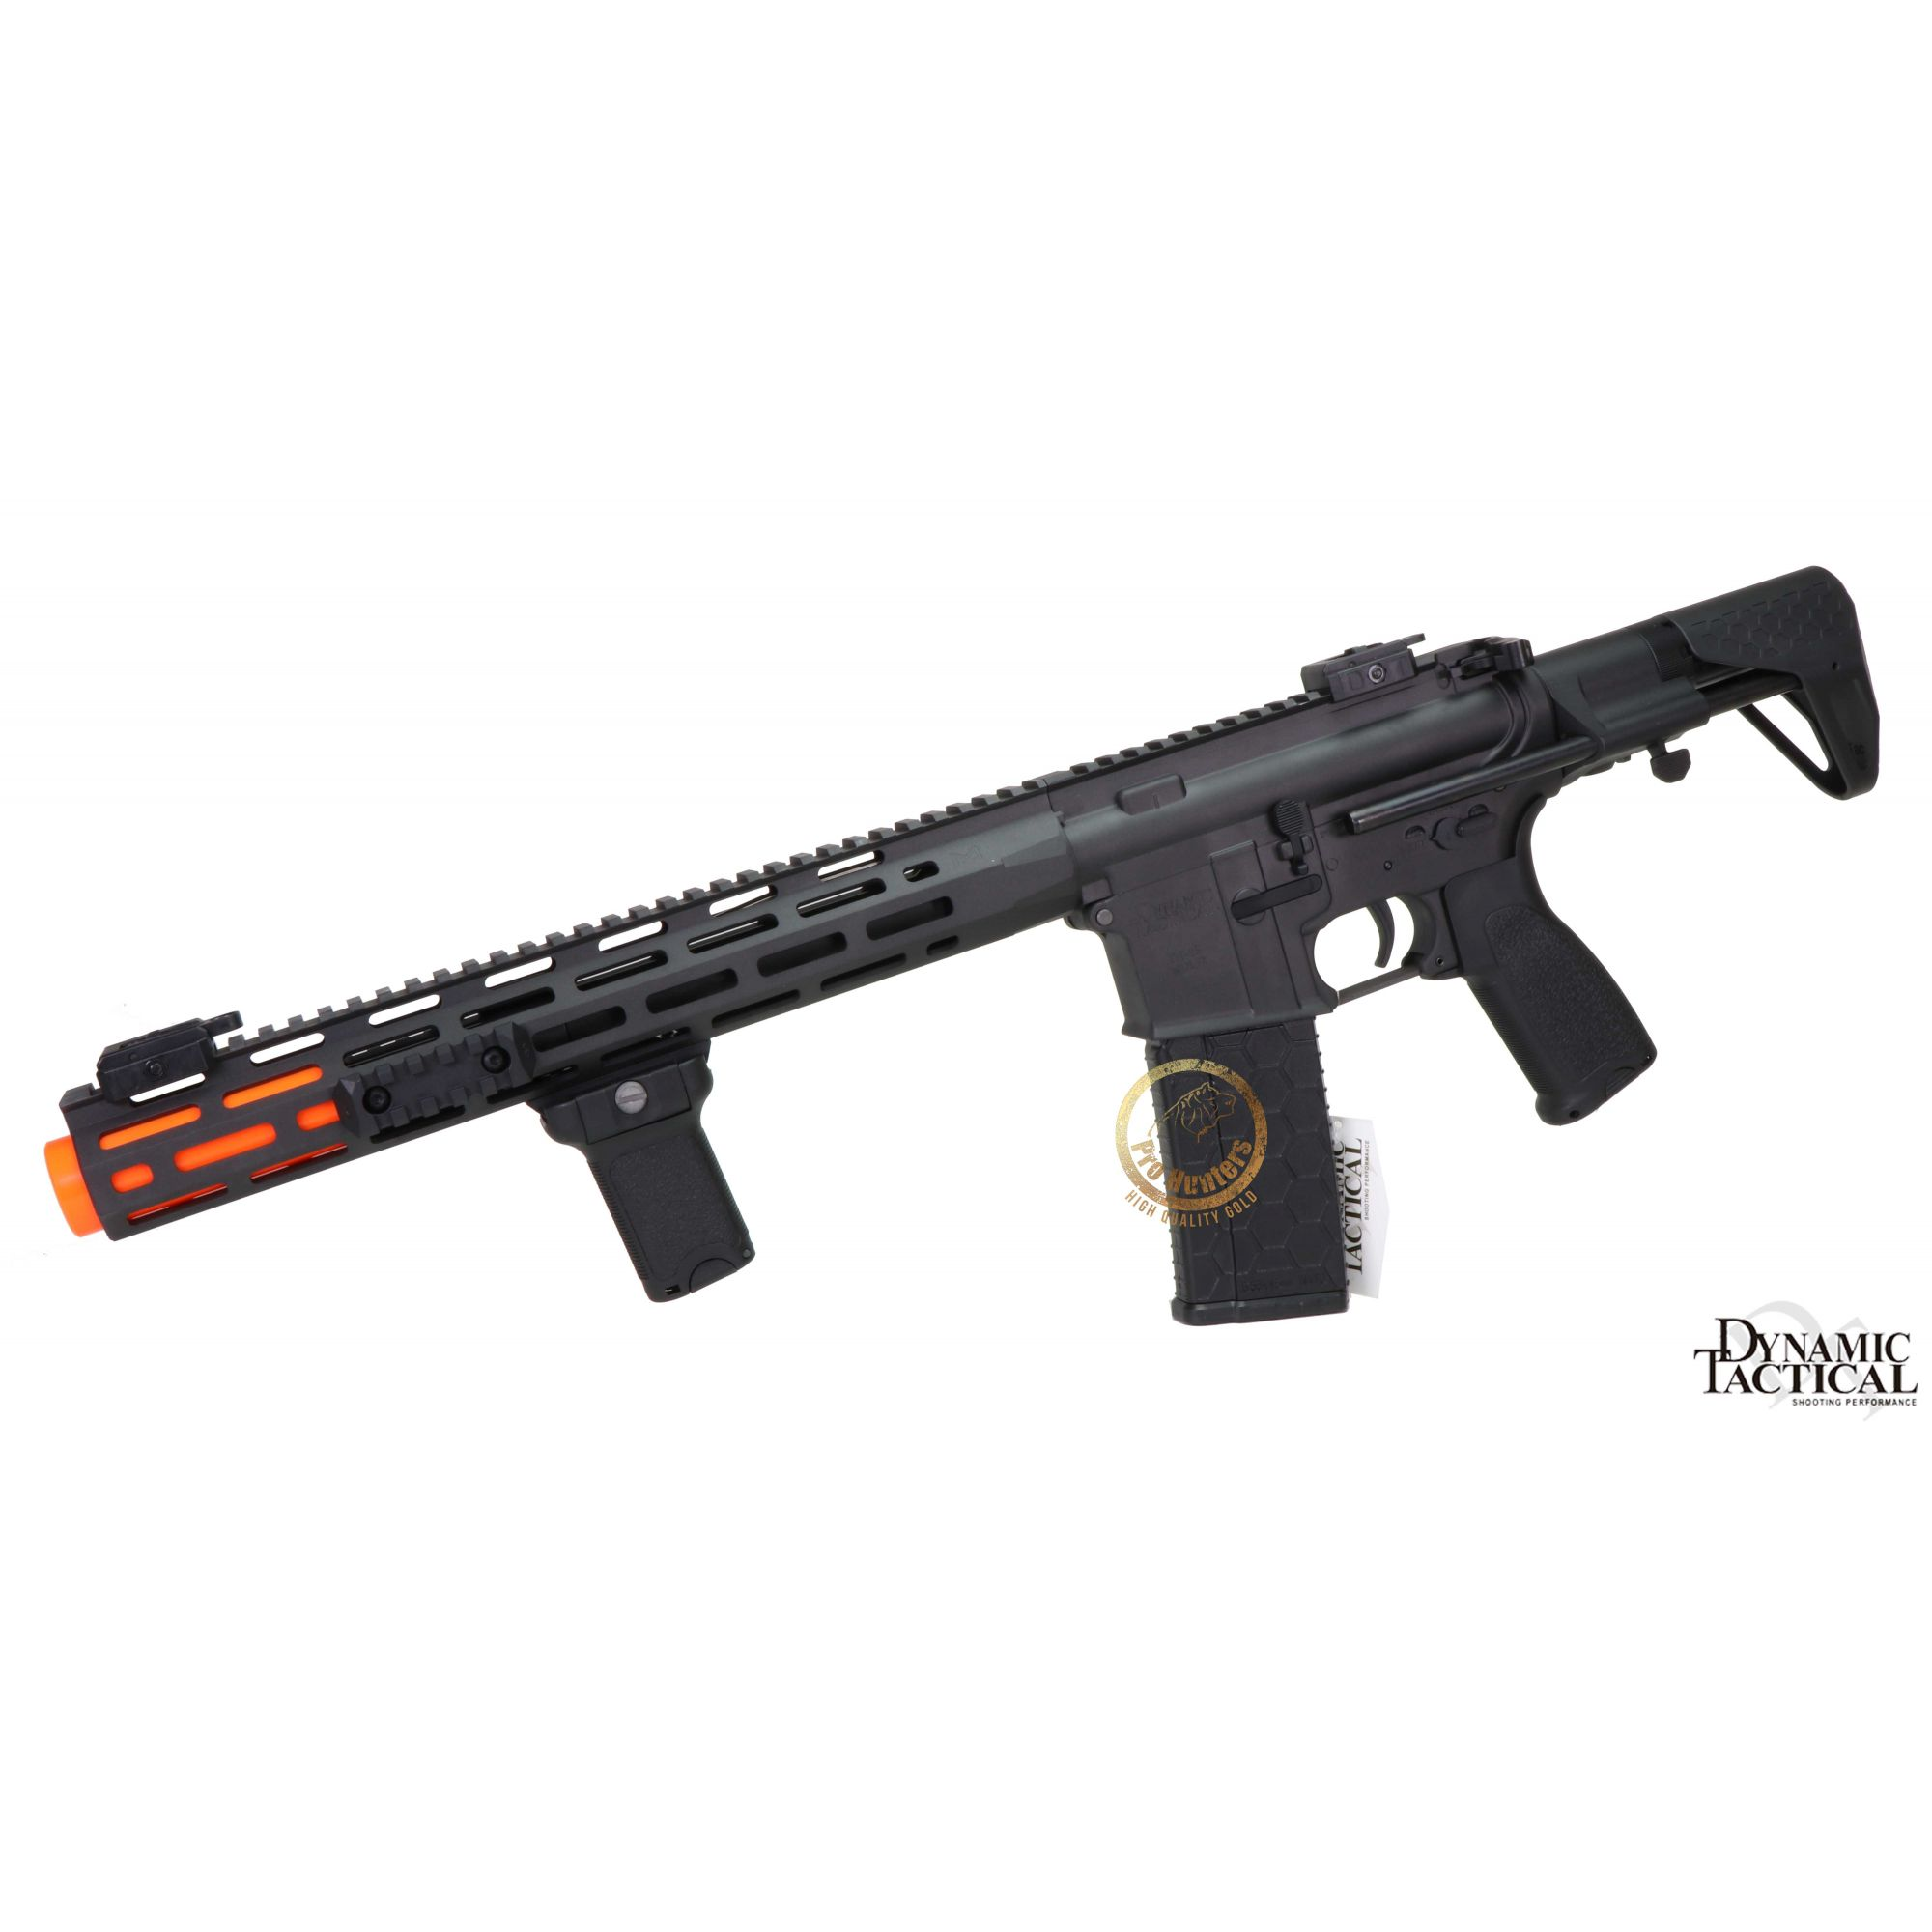 Rifle Airsoft Dytac EVO Standard M4 Recon - Black